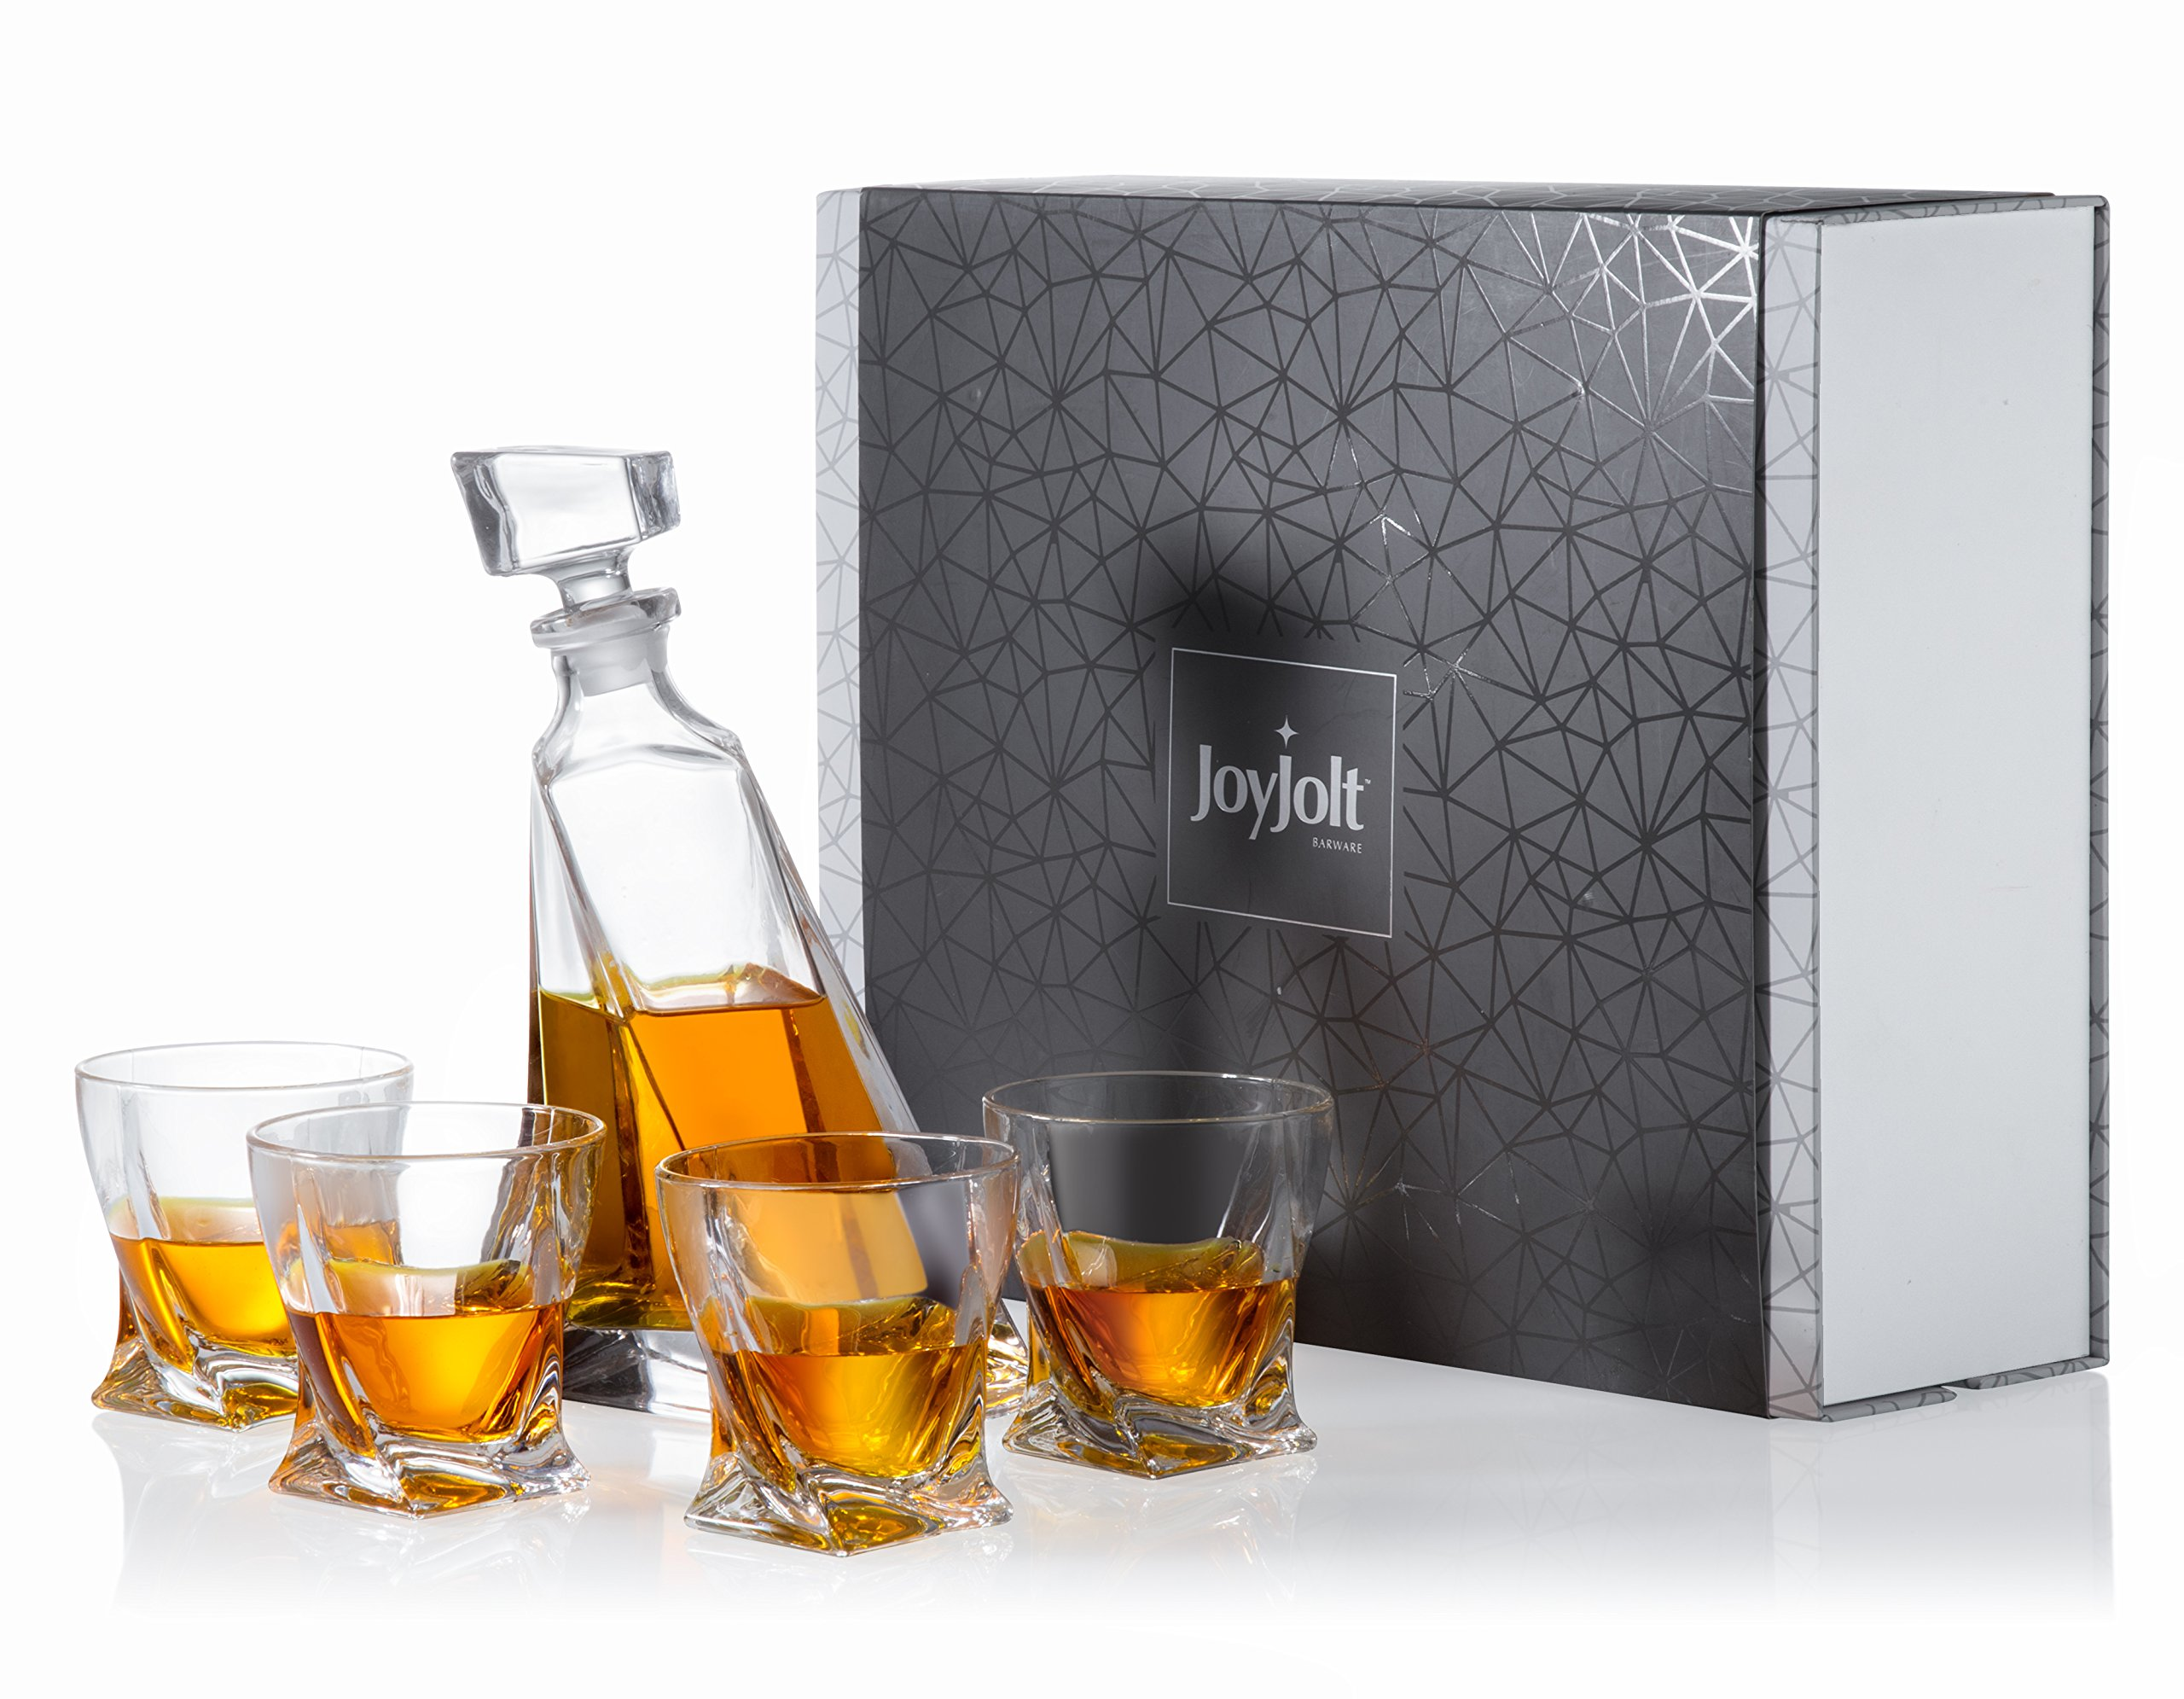 JoyJolt Atlas 5-Piece Crystal Whiskey Decanter Set,100% Lead-Free Crystal Bar Set, Crystal Decanter Set Comes With A Scotch Decanter-22 Ounces And A Set Of 4 Old Fashioned Whiskey Glasses-10.8 Ounces.